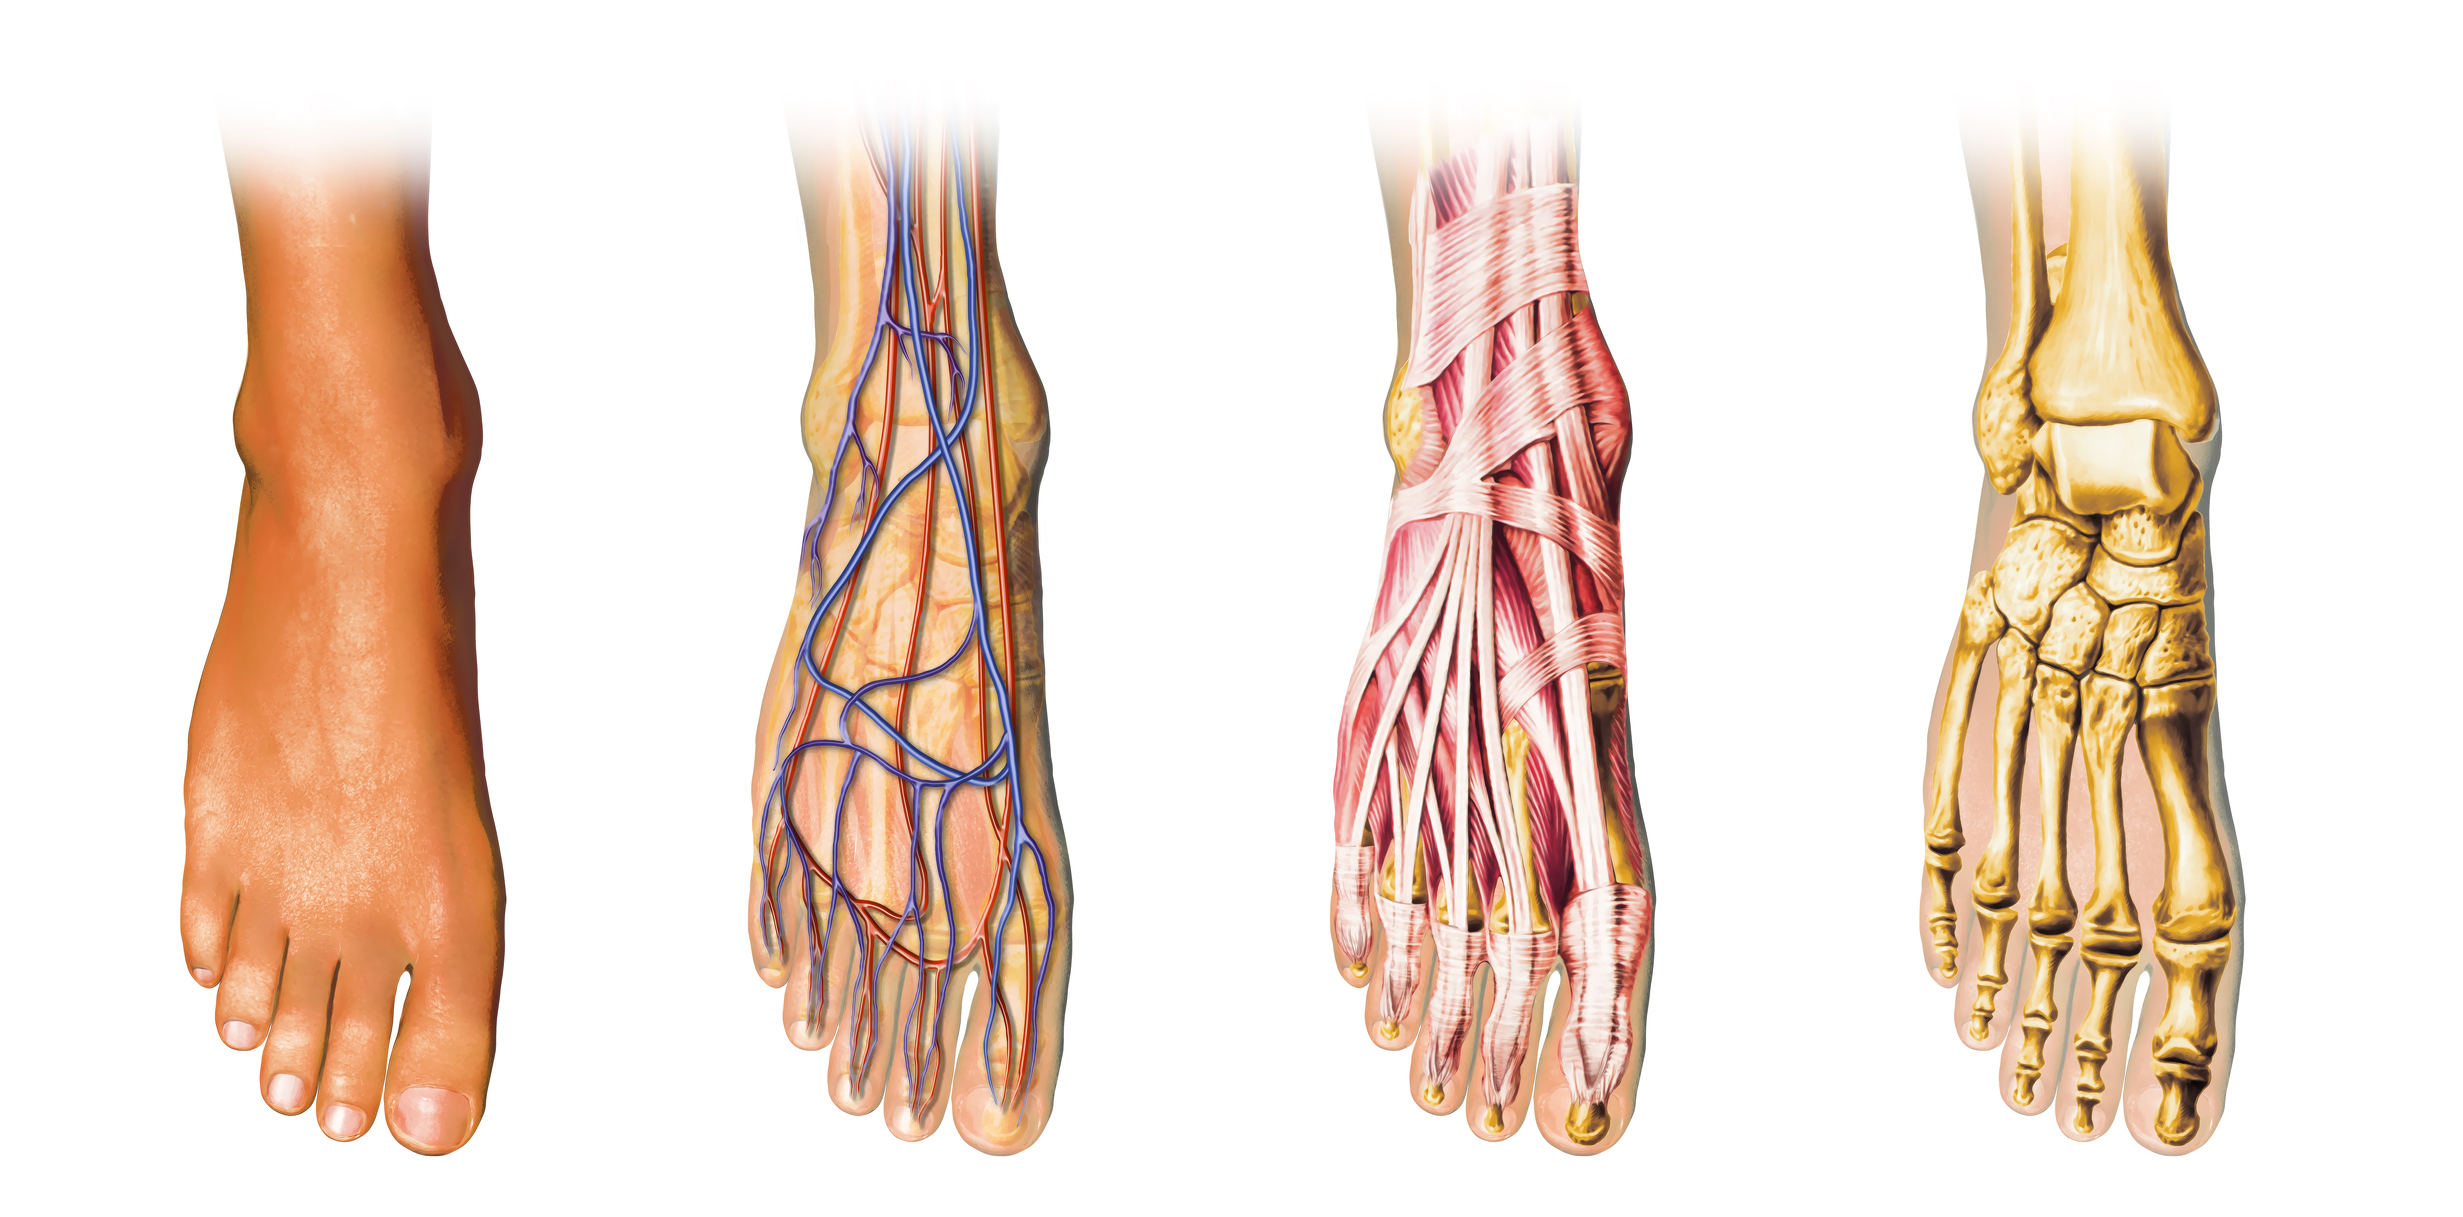 The Complex Foot Anatomy